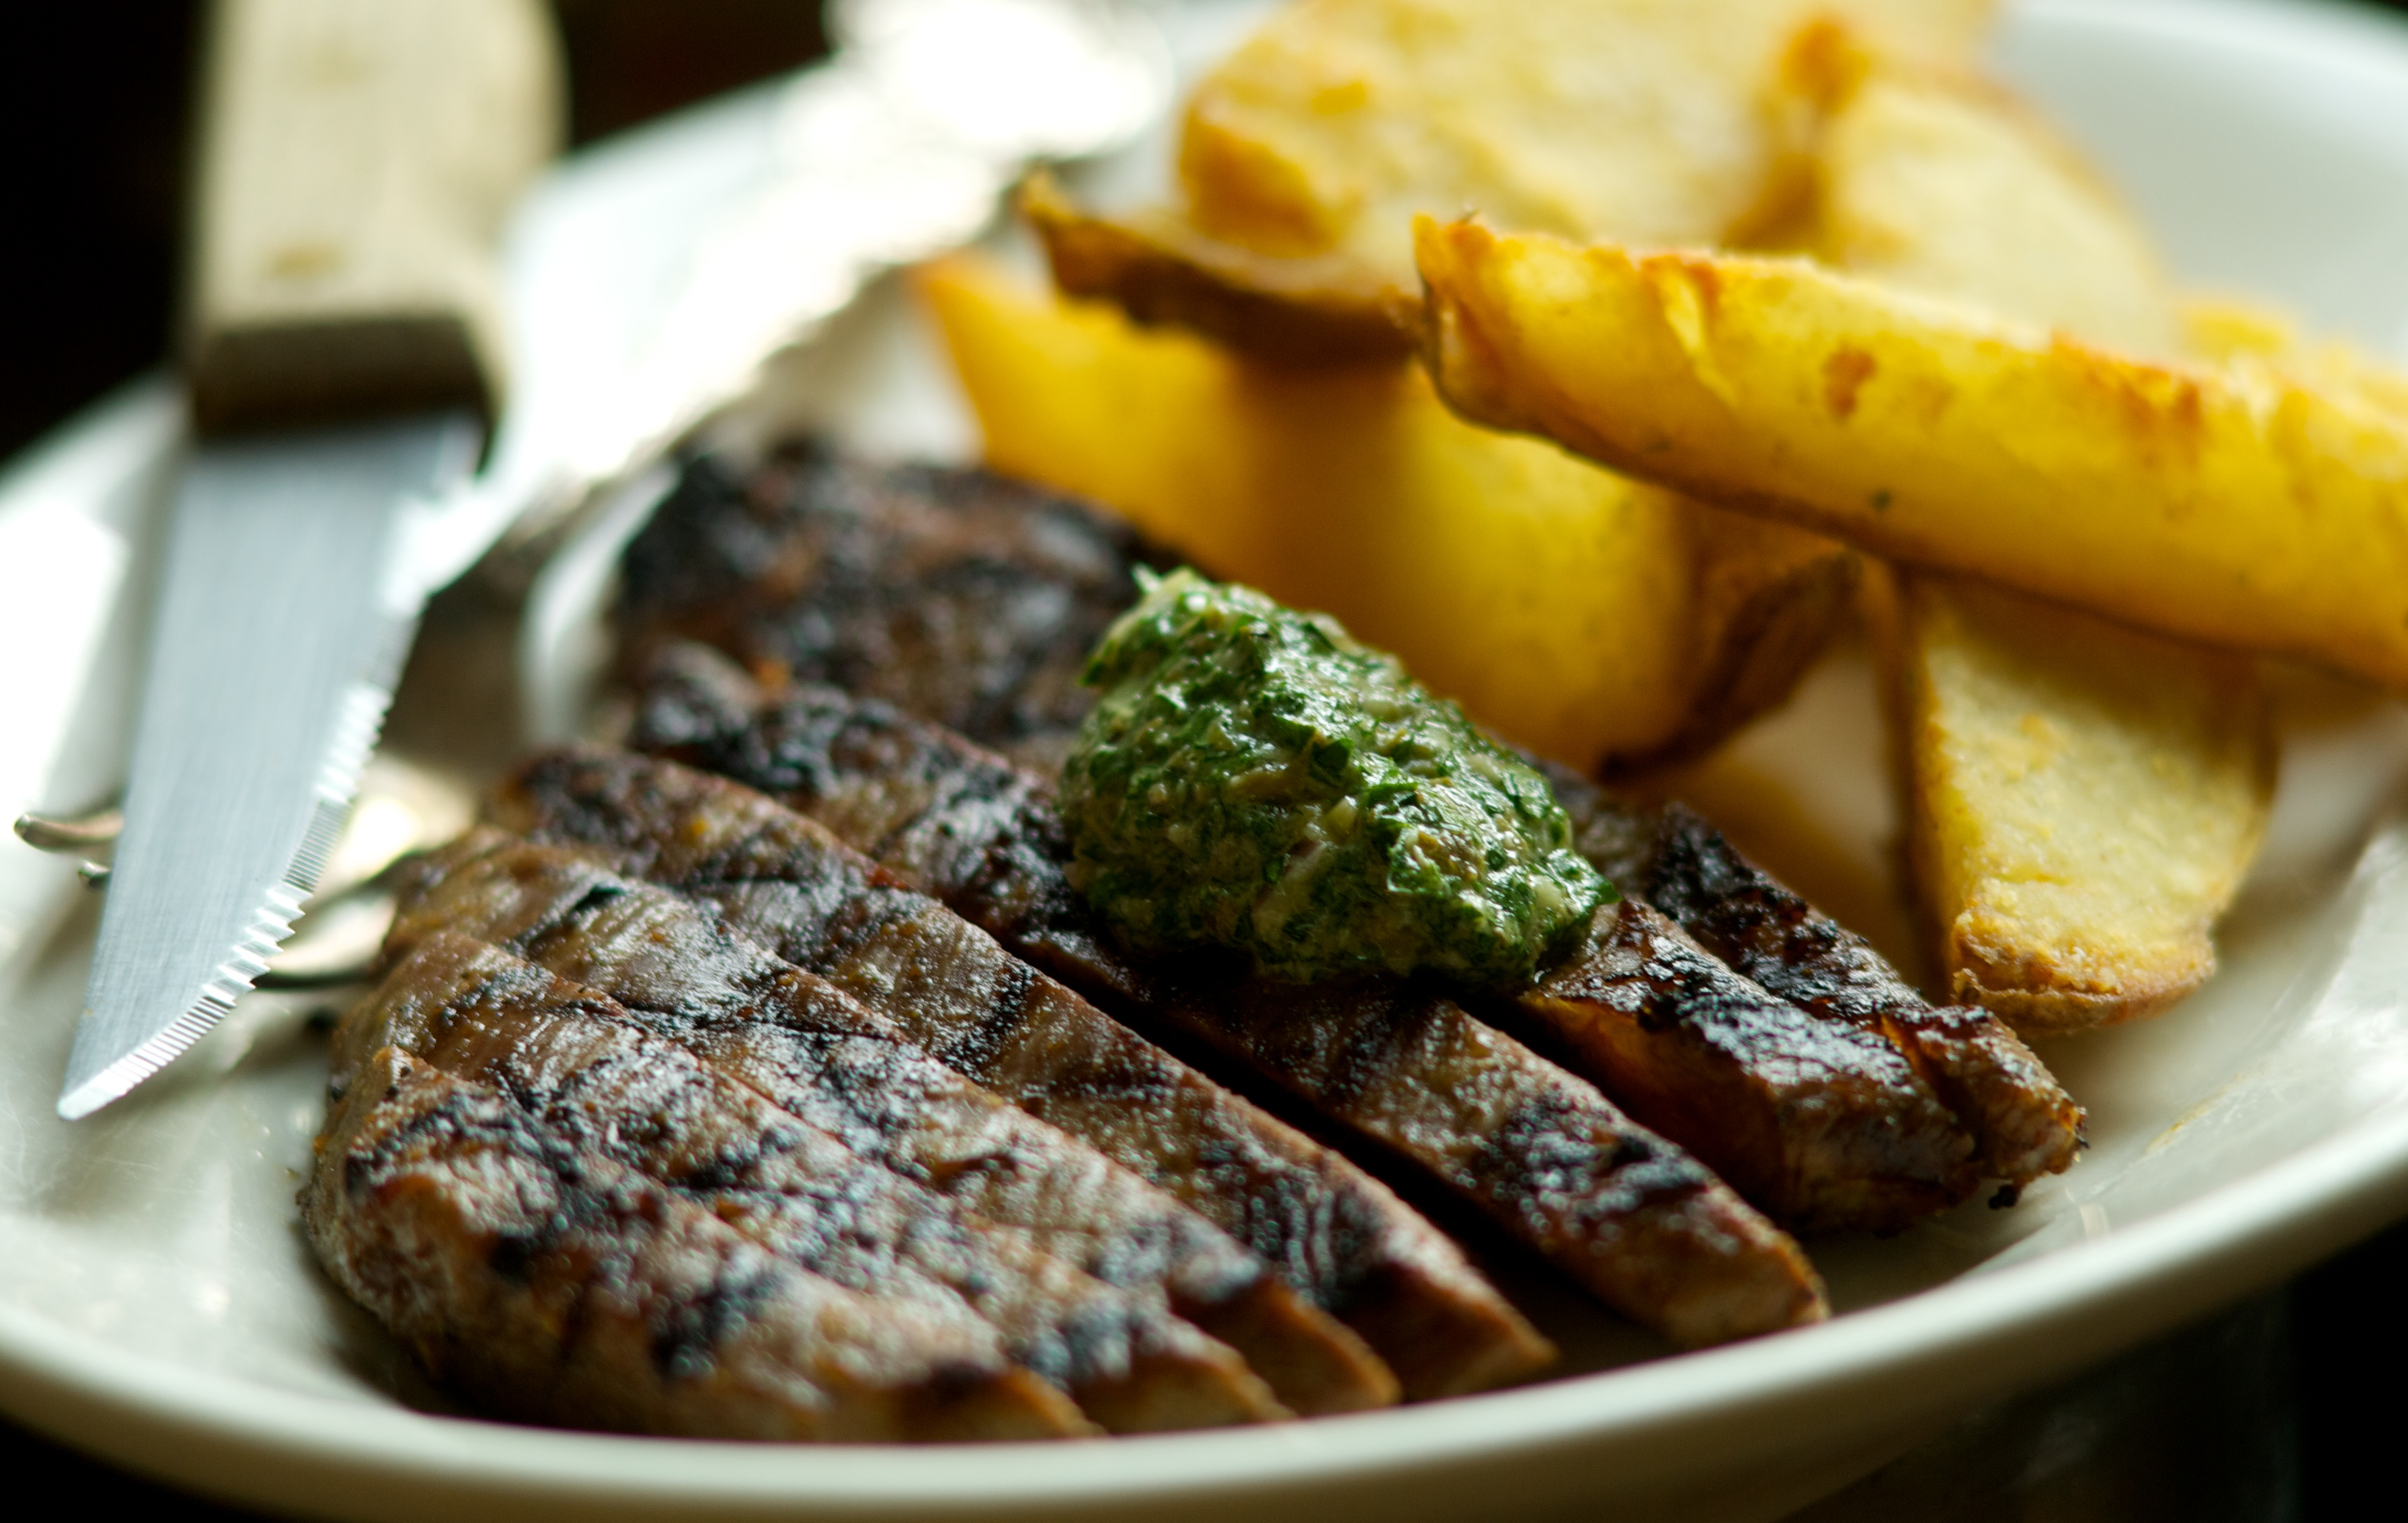 Classic London Broil with a Twist of St. John's & Cottage Fries